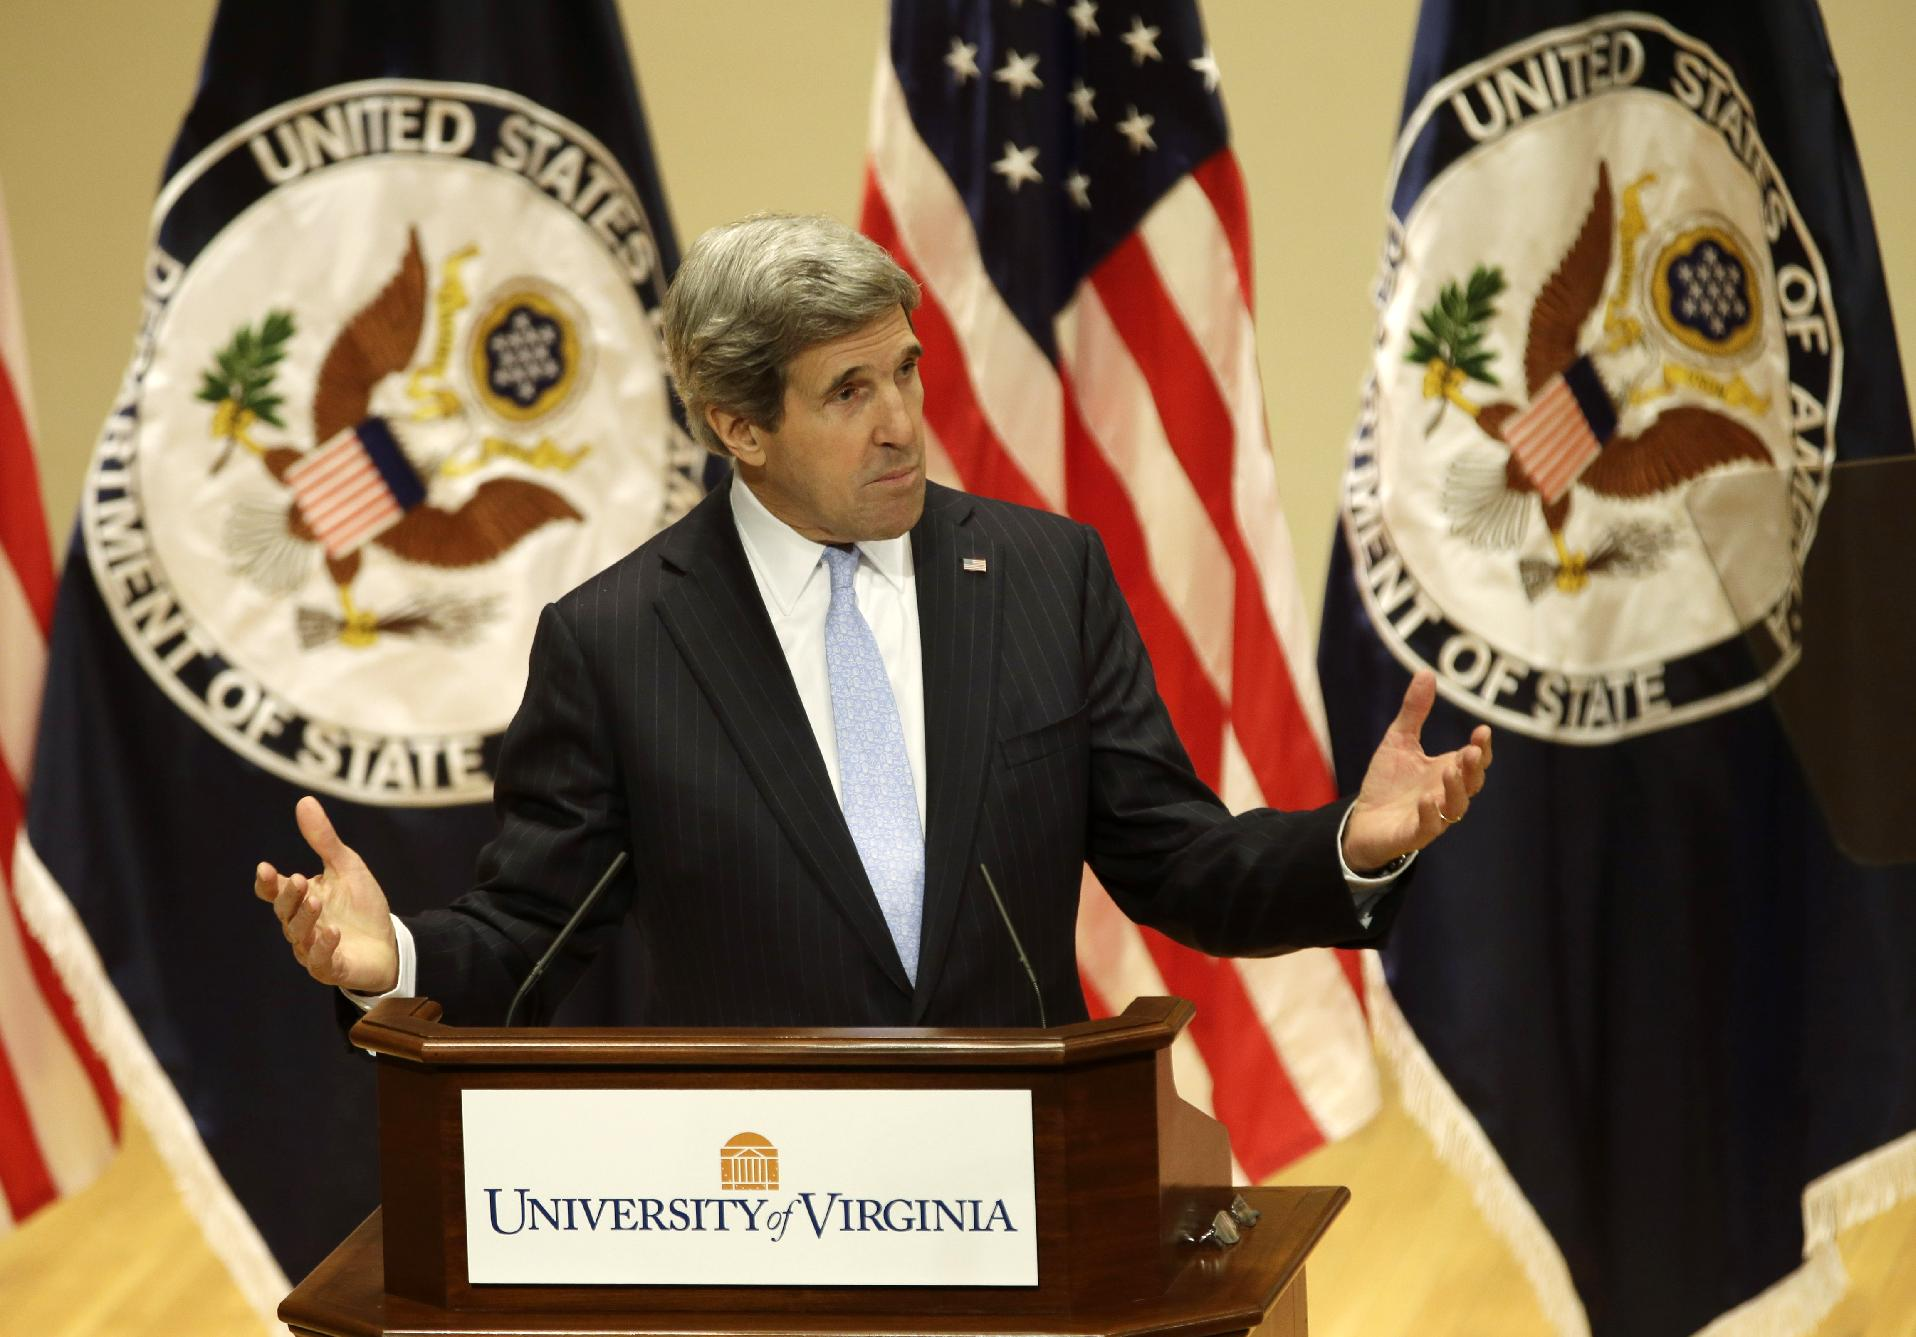 Secretary of State John Kerry delivers his first foreign policy speech, Wednesday, Feb. 20, 2013, at the University of Virginia in Charlottesville, Va. (Steve Helber/AP)